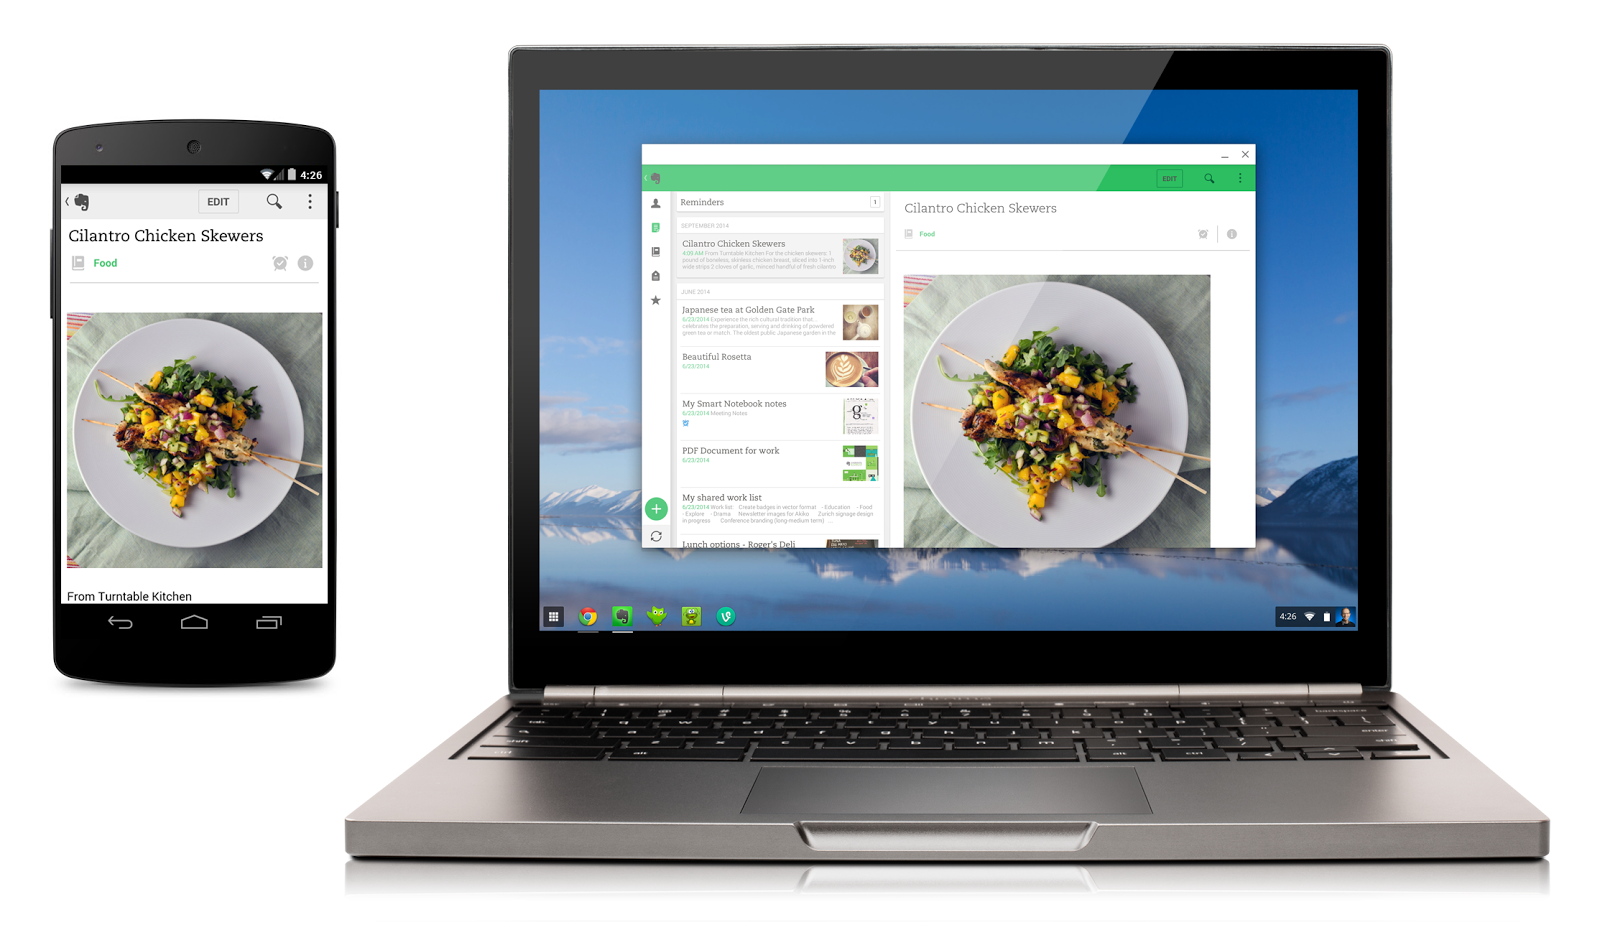 Google says more premium Chromebooks will launch later this year